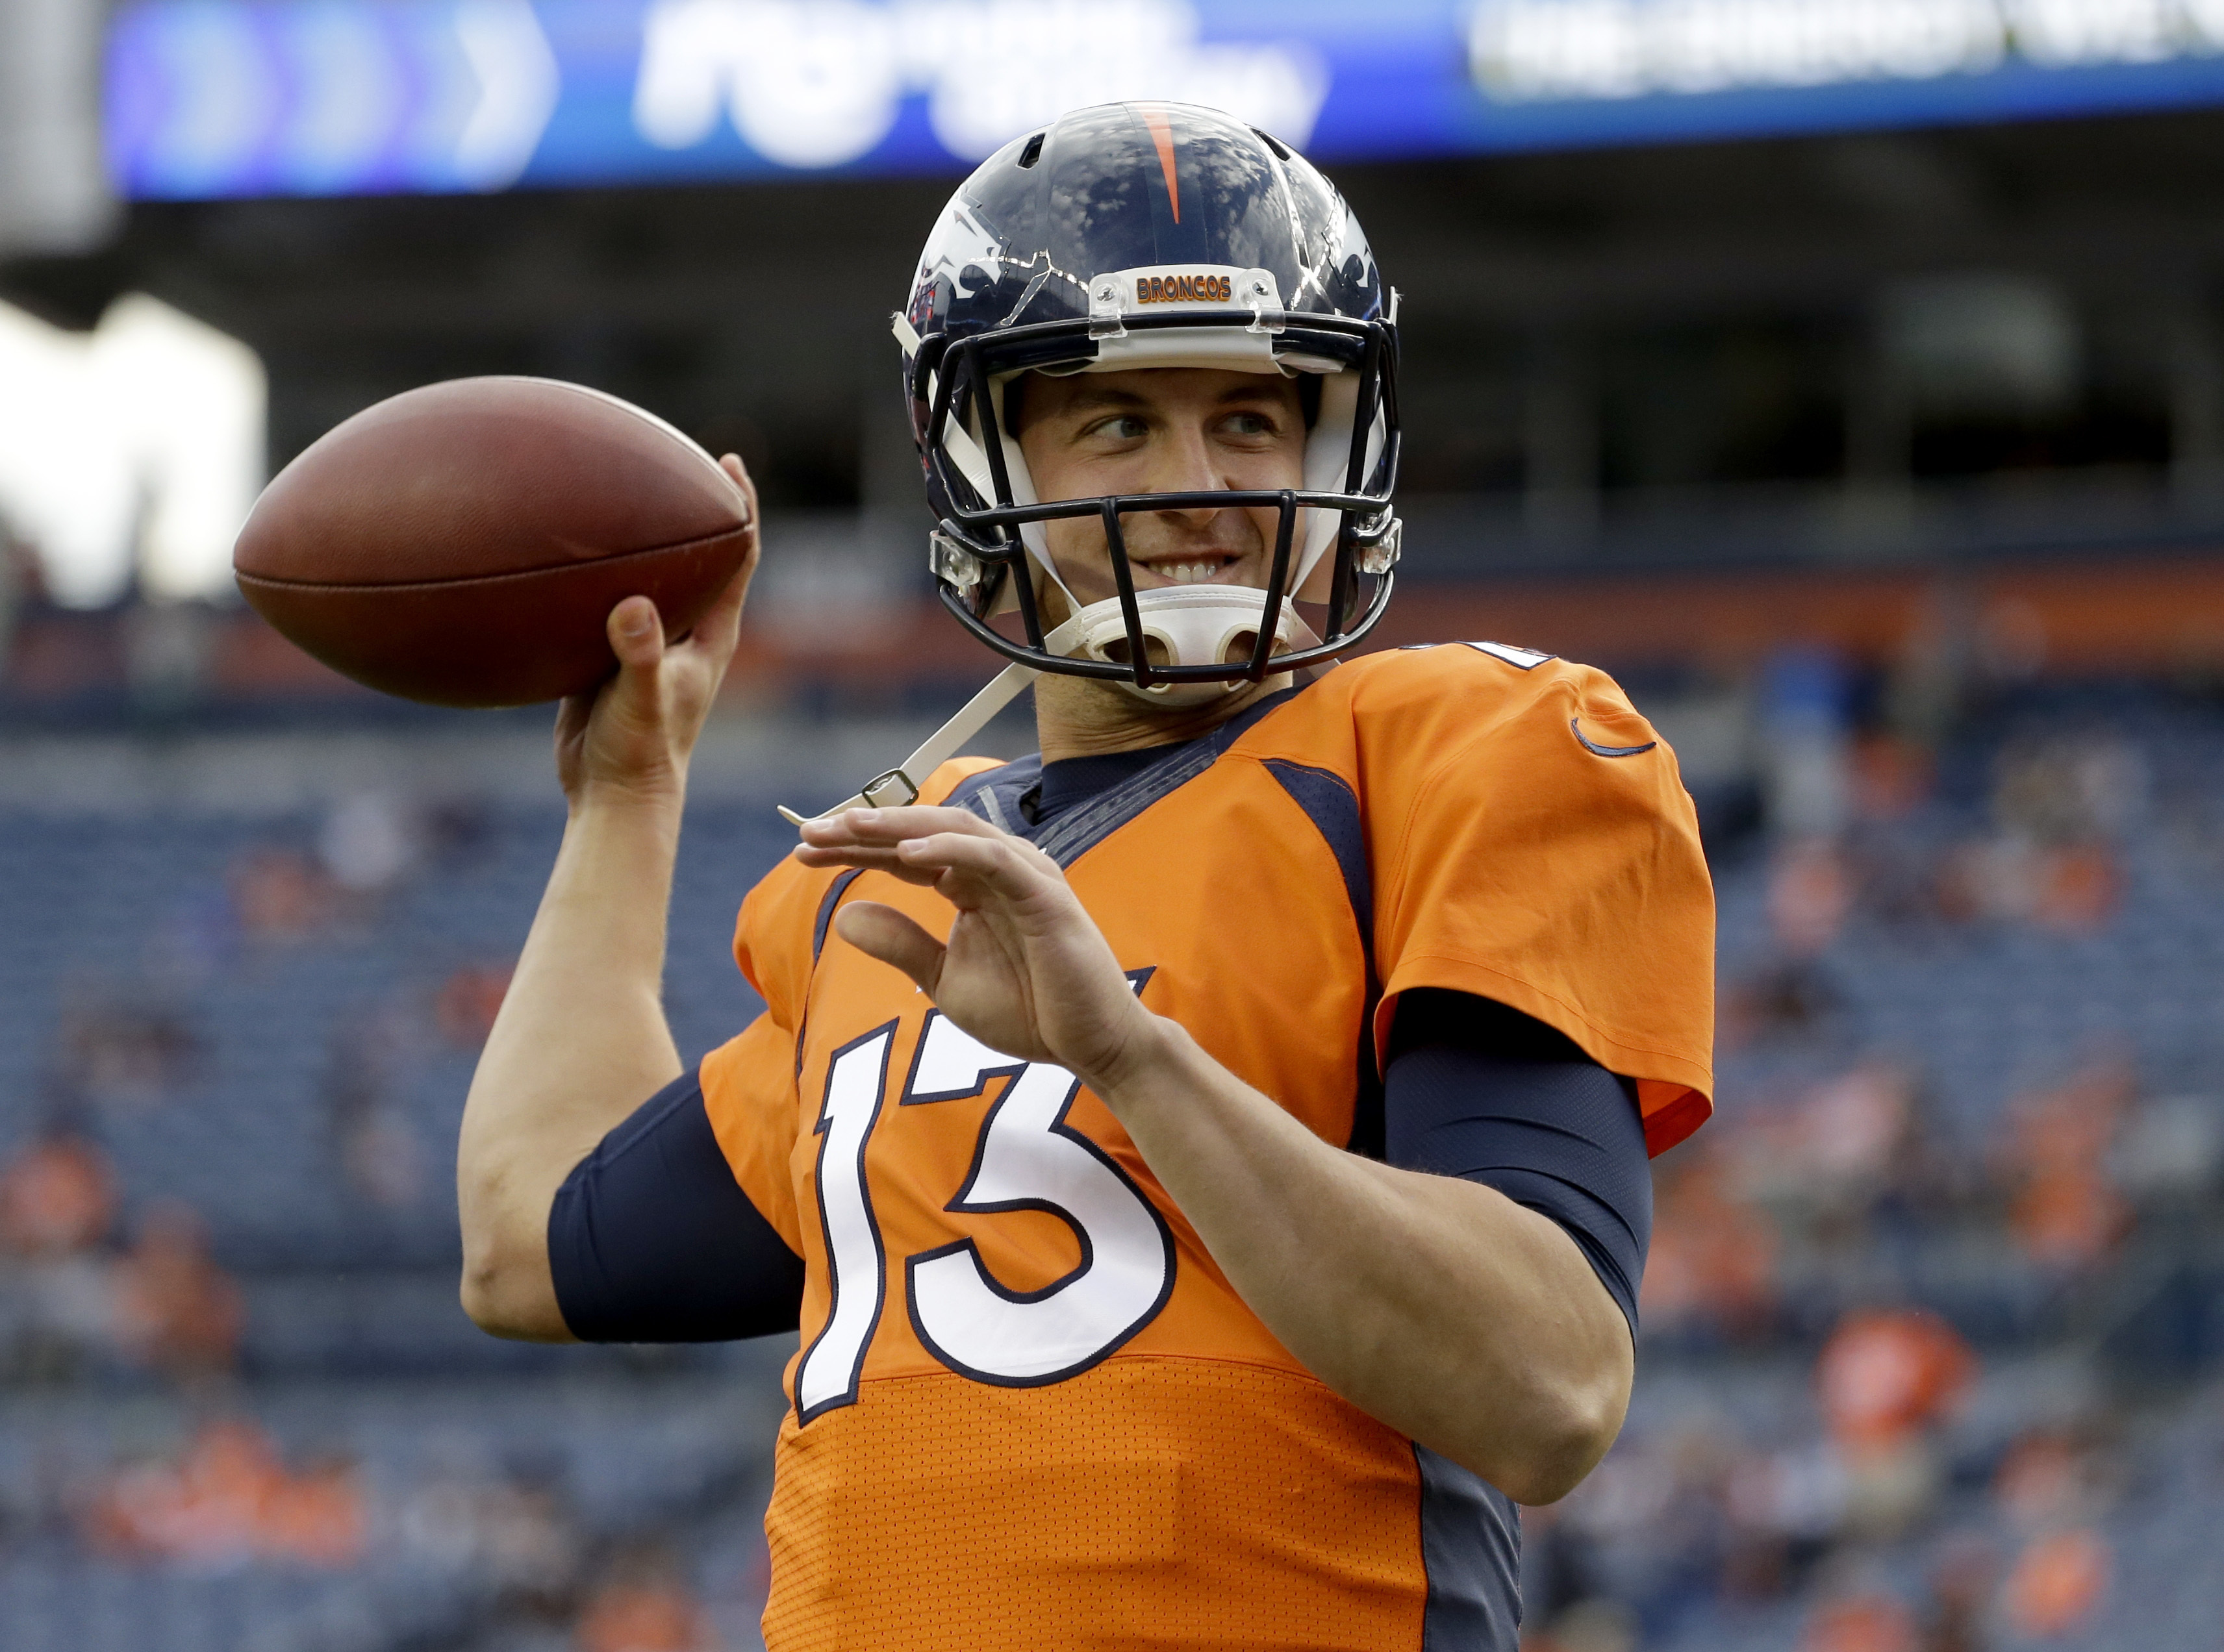 FILE - In this Aug. 27, 2016, file photo, Denver Broncos quarterback Trevor Siemian (13) warms up prior to an NFL preseason football game against the Los Angeles Rams, in Denver. Offseason workouts, training camp and preseason games are supposed to supply